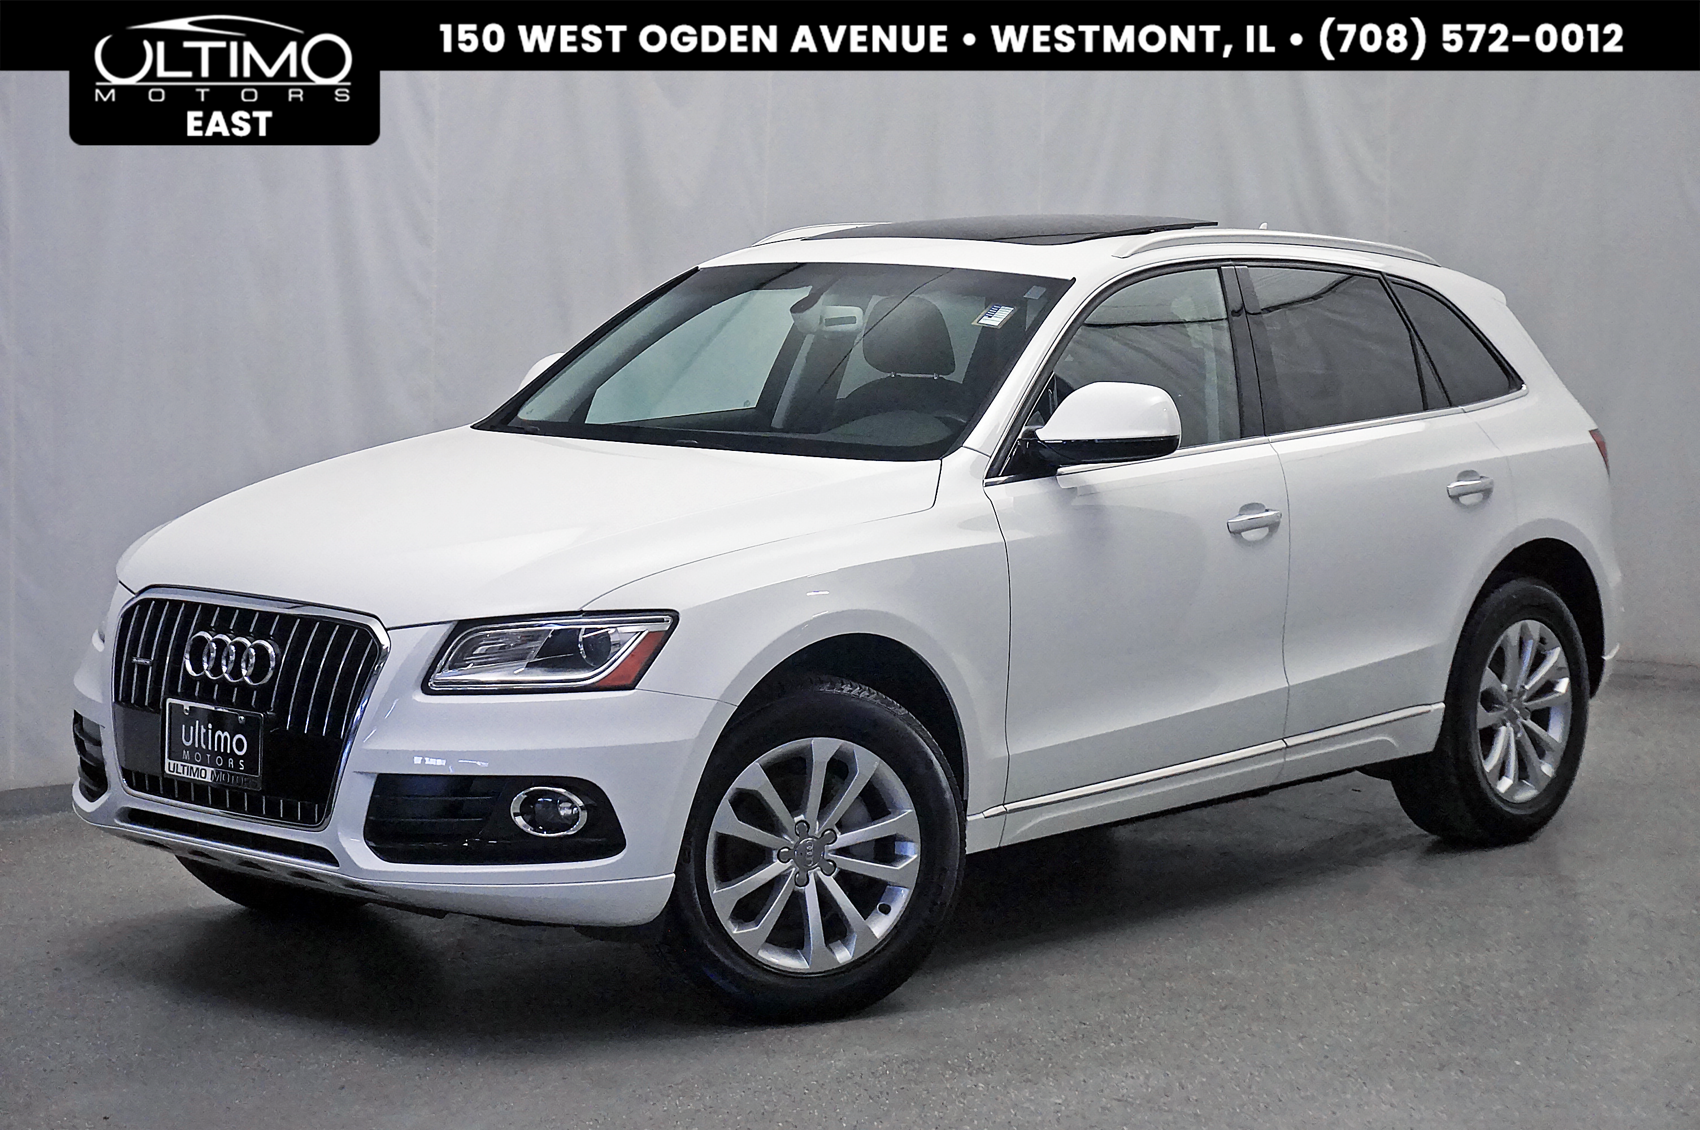 Pre-Owned 2016 Audi Q5 Premium Navigation Plus, Heated Seats, Xenon Plus 1-Owner!